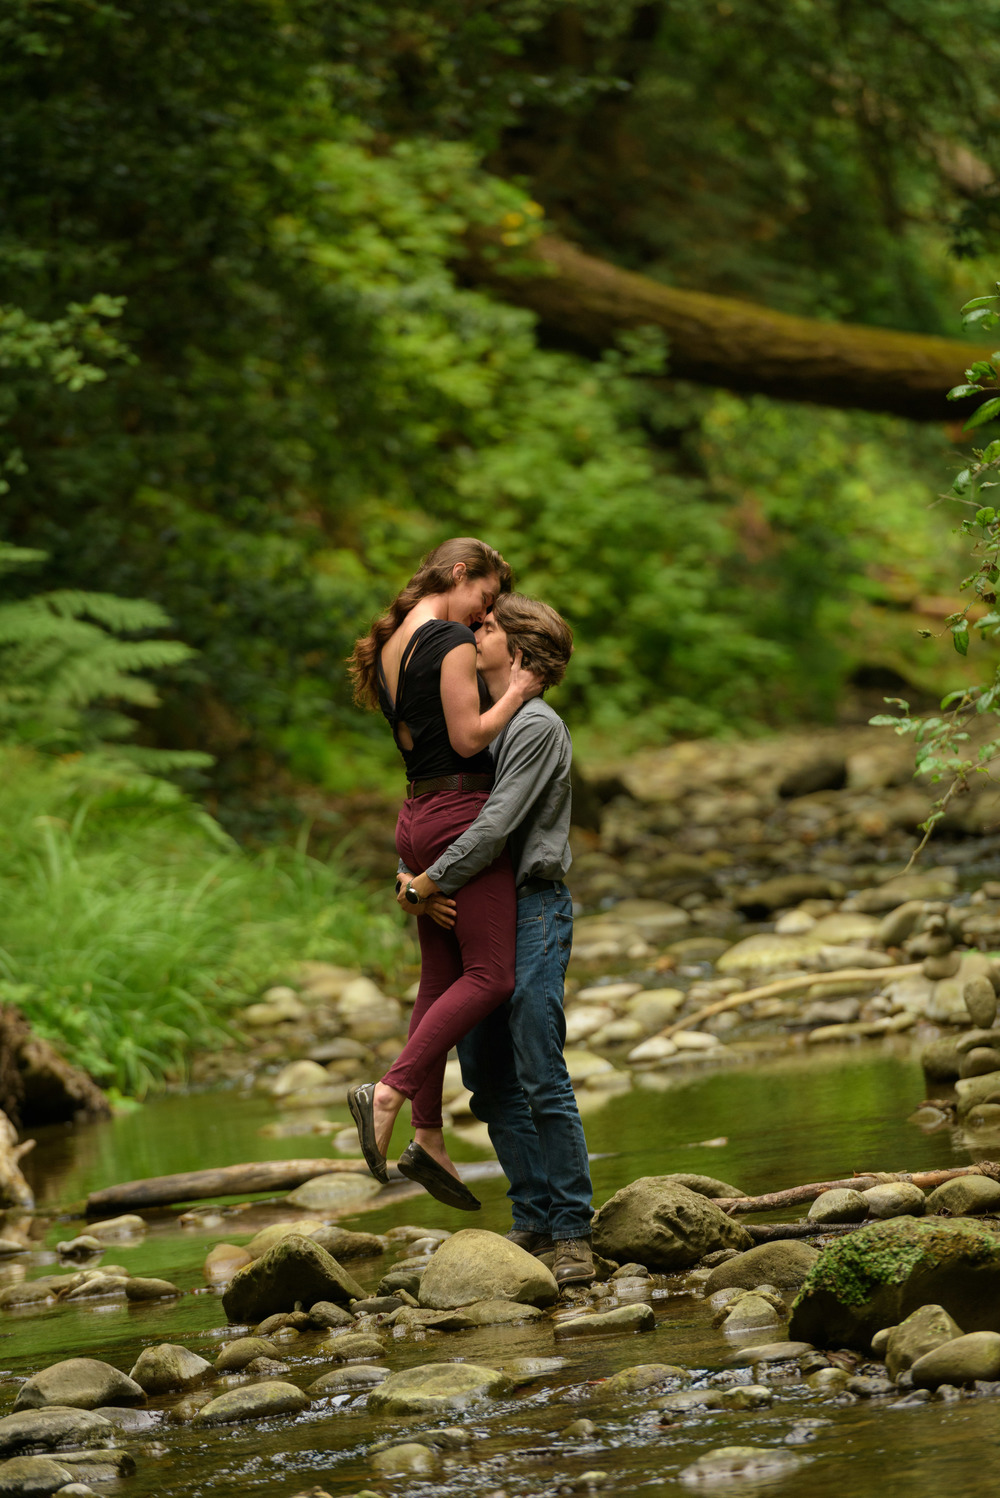 Man lifting up his fiancee for an intimate moment in the creek - Engagement Photos in Nisene Marks Forest in Aptos, CA - by Bay Area wedding photographer Chris Schmauch